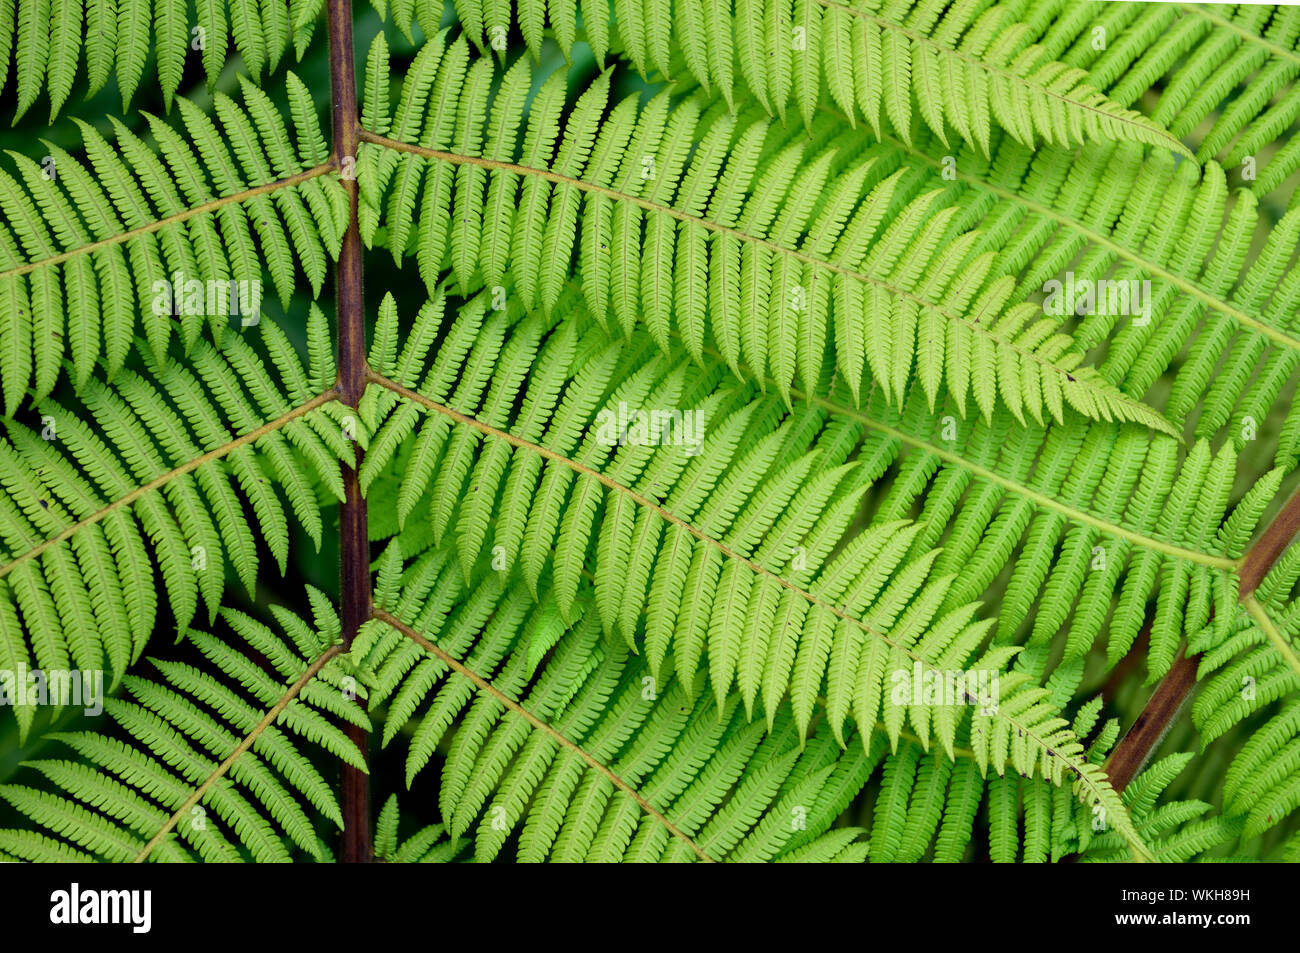 Tropical fern branch with rows of intricate natural leaf patterns, northern Andes, Colombia Stock Photo